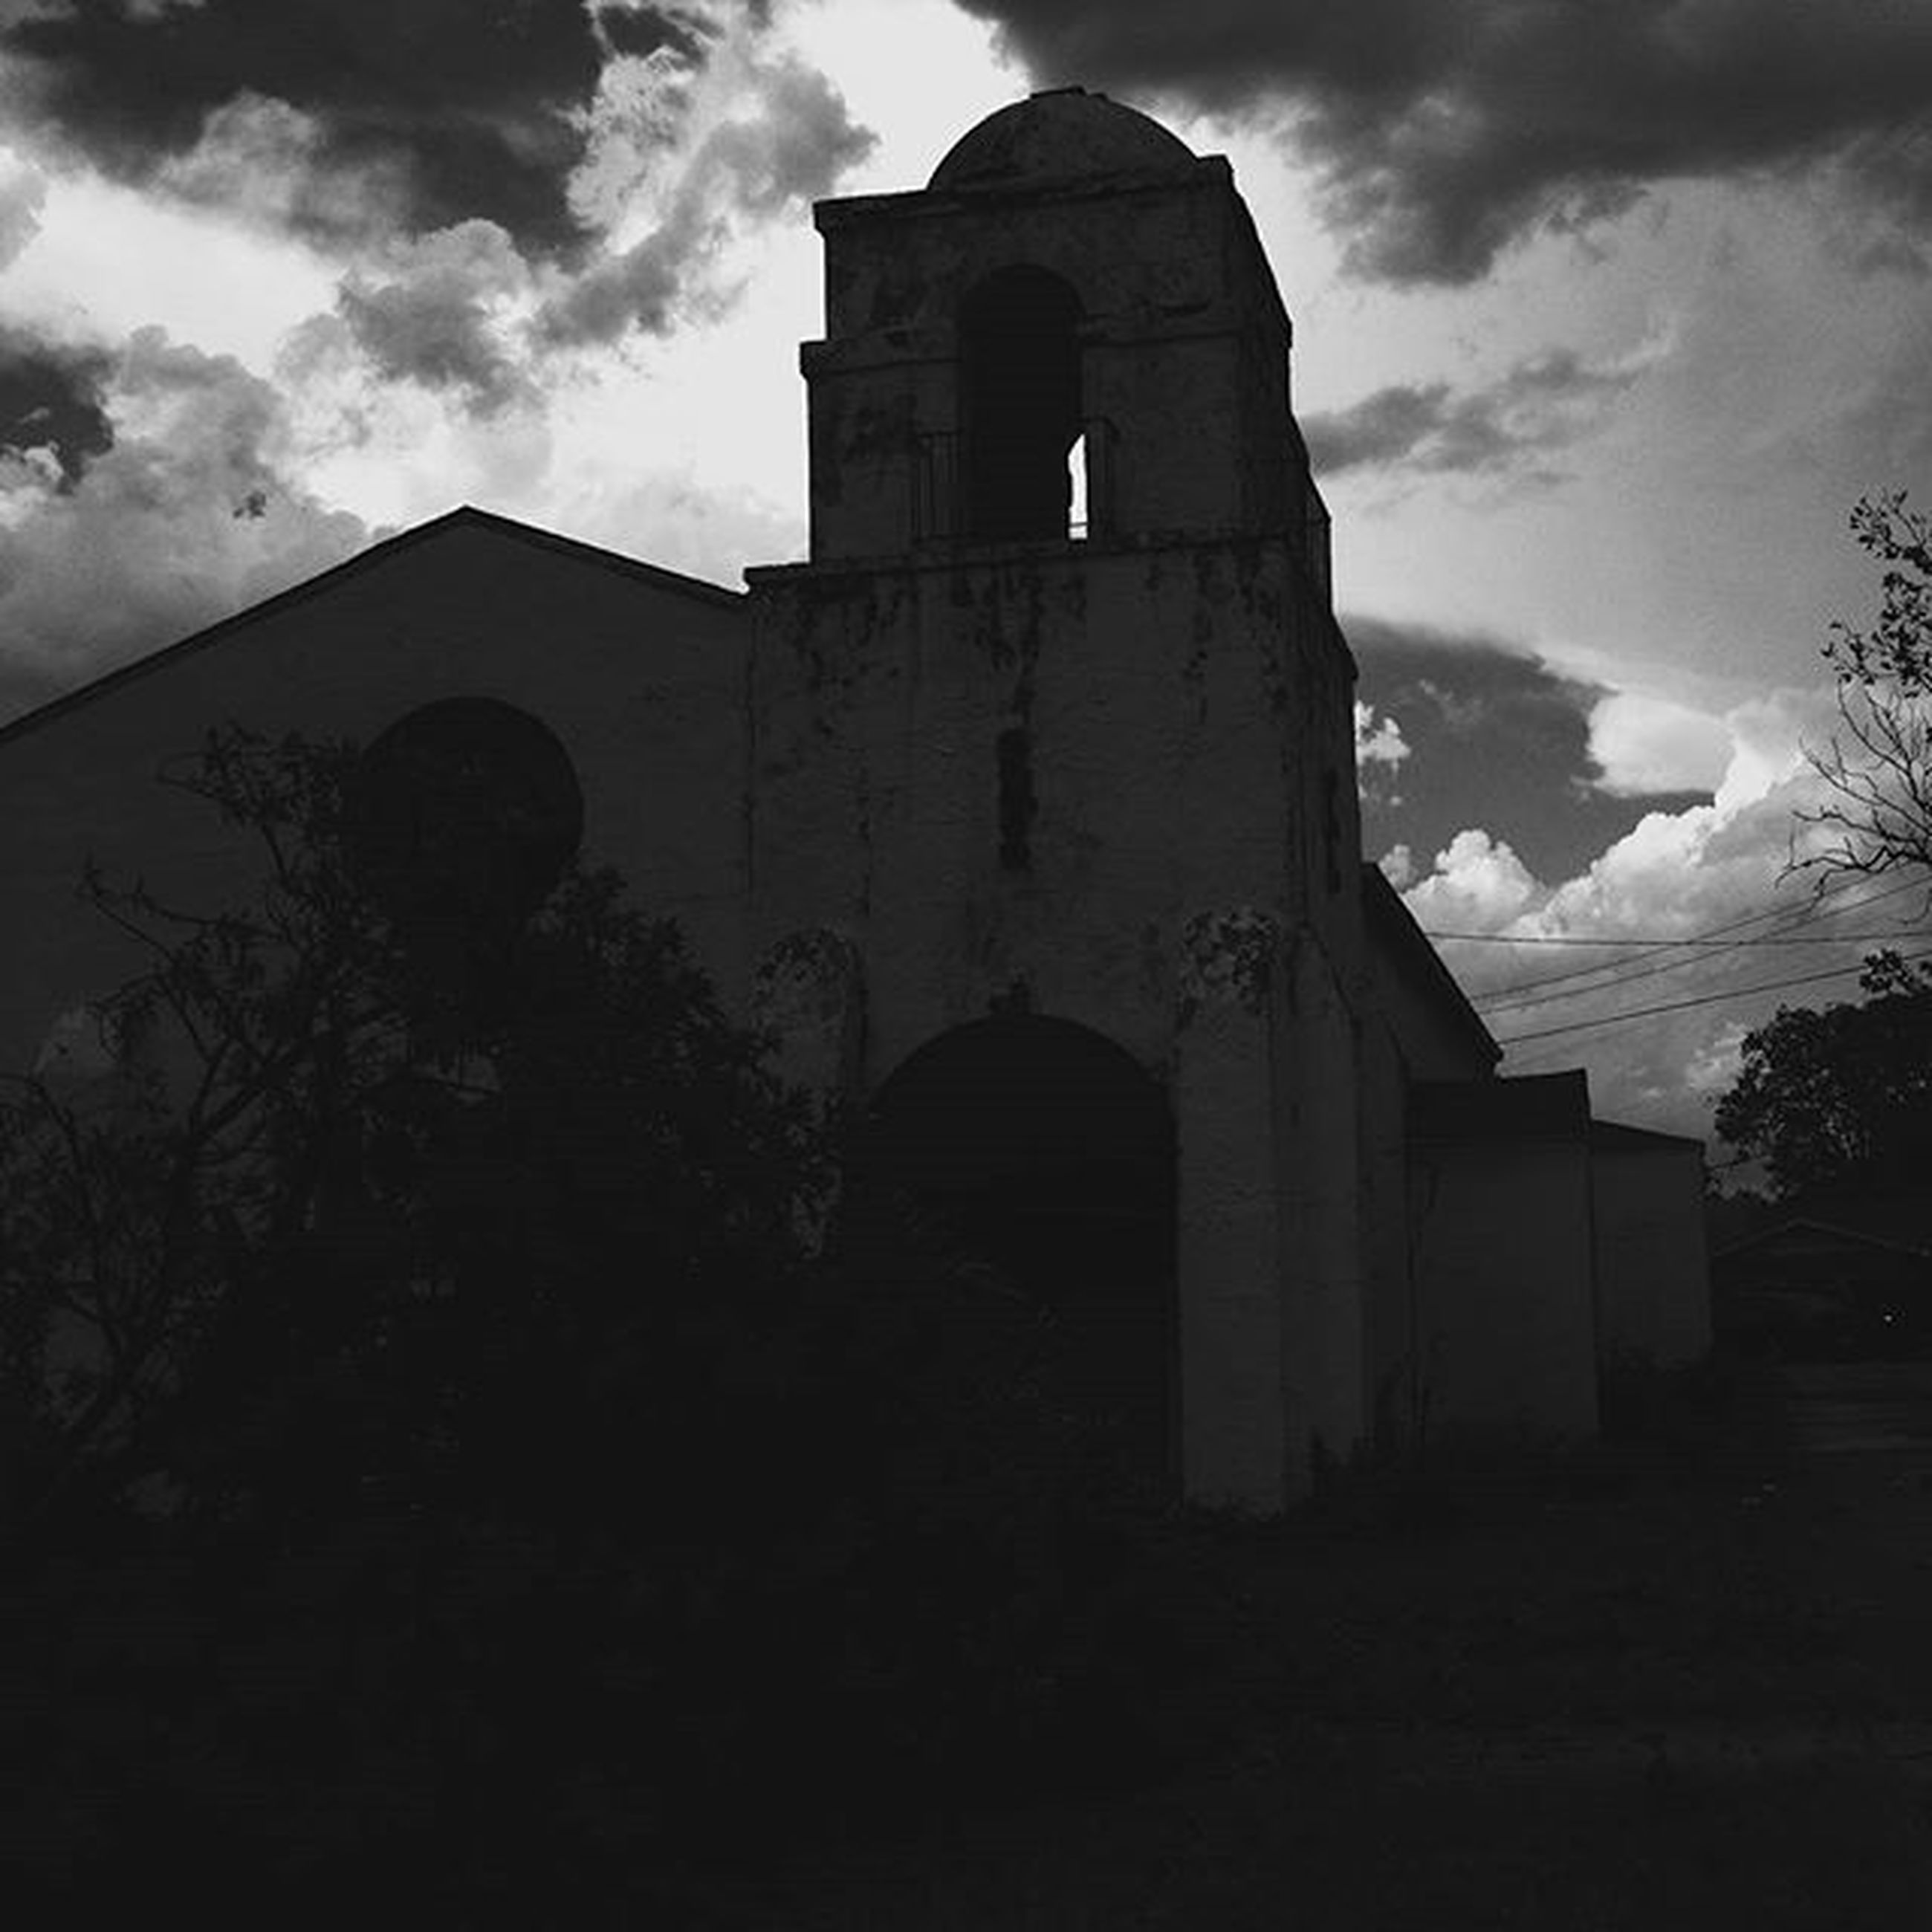 architecture, built structure, building exterior, sky, low angle view, cloud - sky, cloud, old, tree, cloudy, history, church, outdoors, house, religion, no people, building, place of worship, spirituality